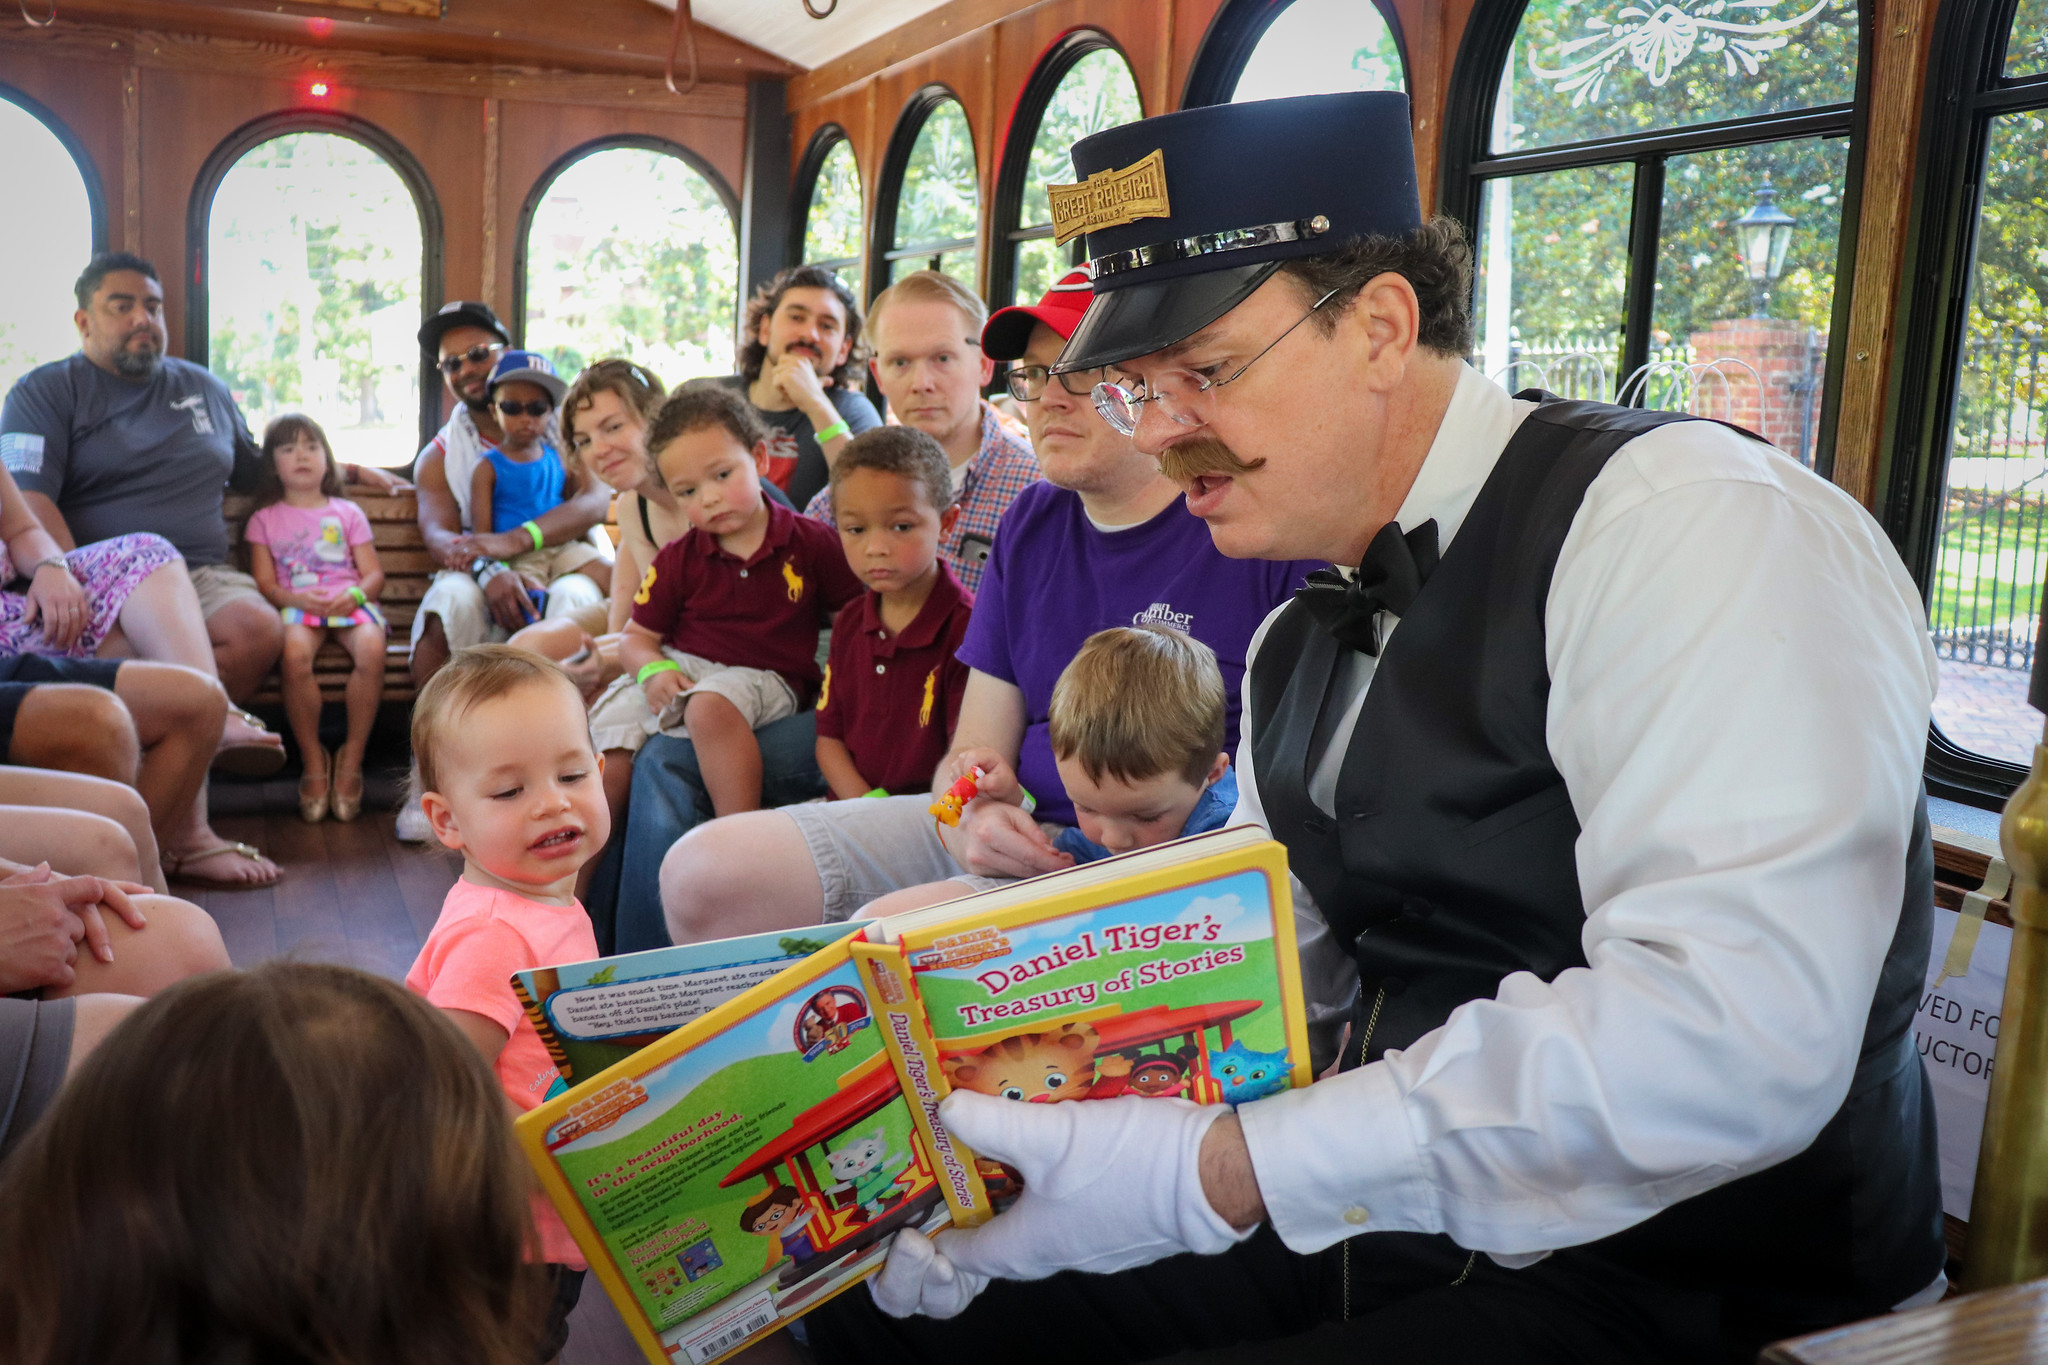 Take a trolley ride with beloved characters from Children's Literature